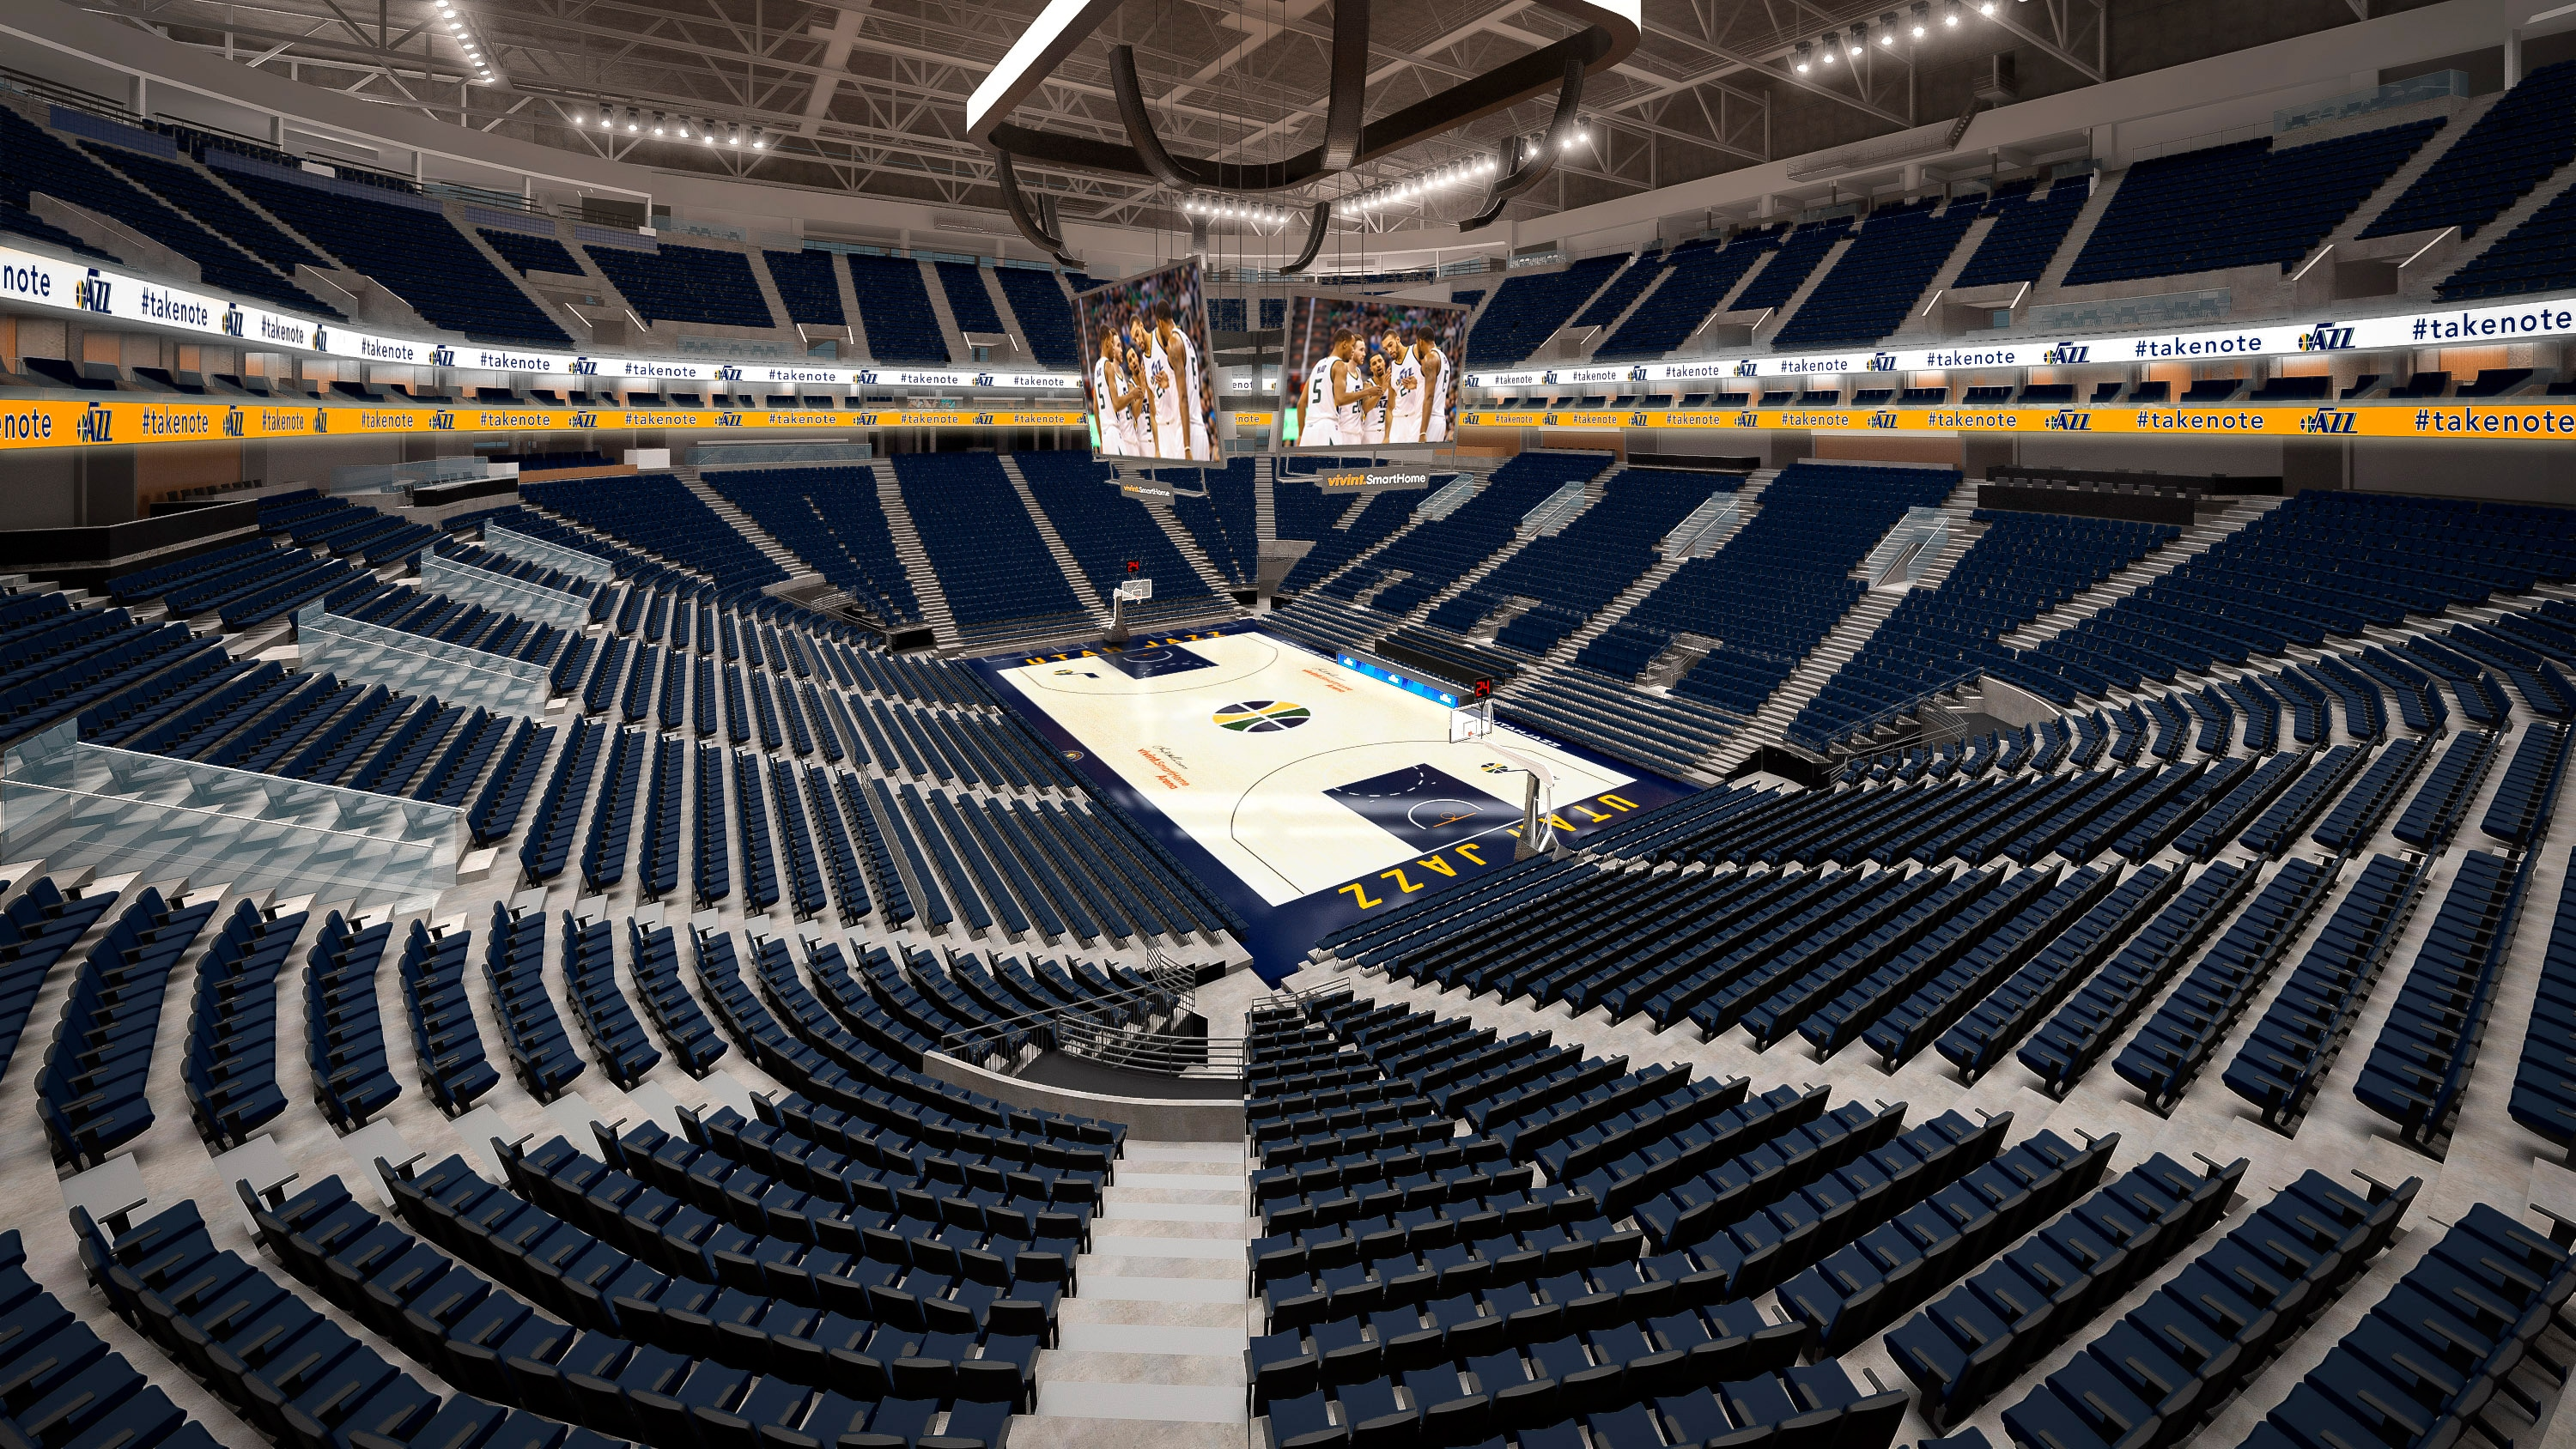 Toyota Of New Orleans >> New Jazz Blue Cushioned Seats for All Fans | Utah Jazz